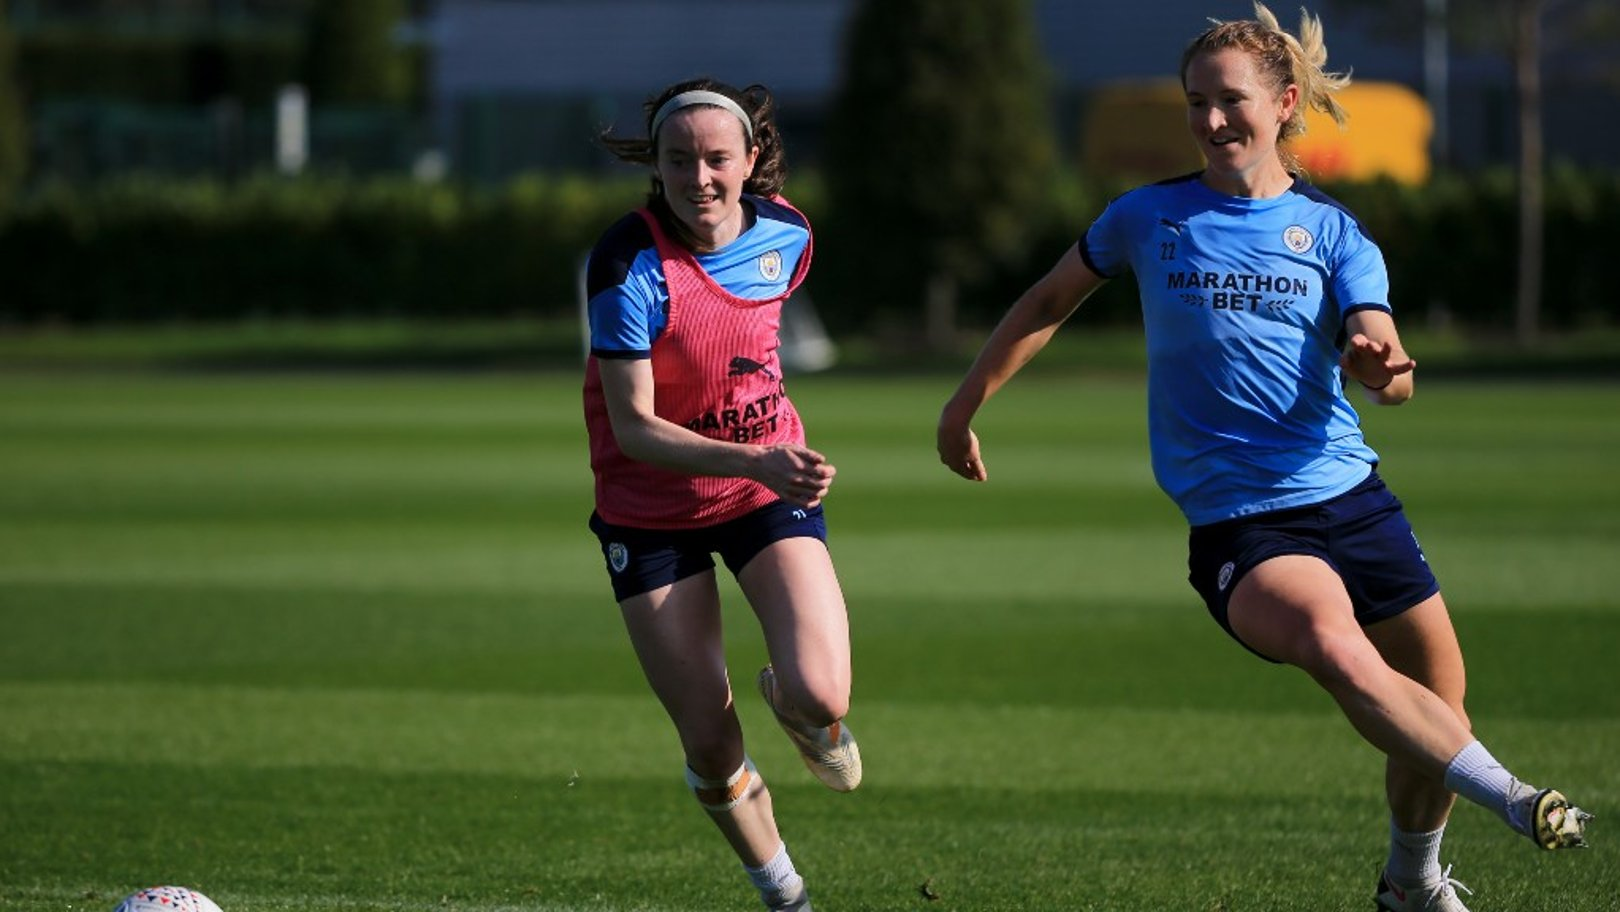 'FA WSL exceeding expectations'